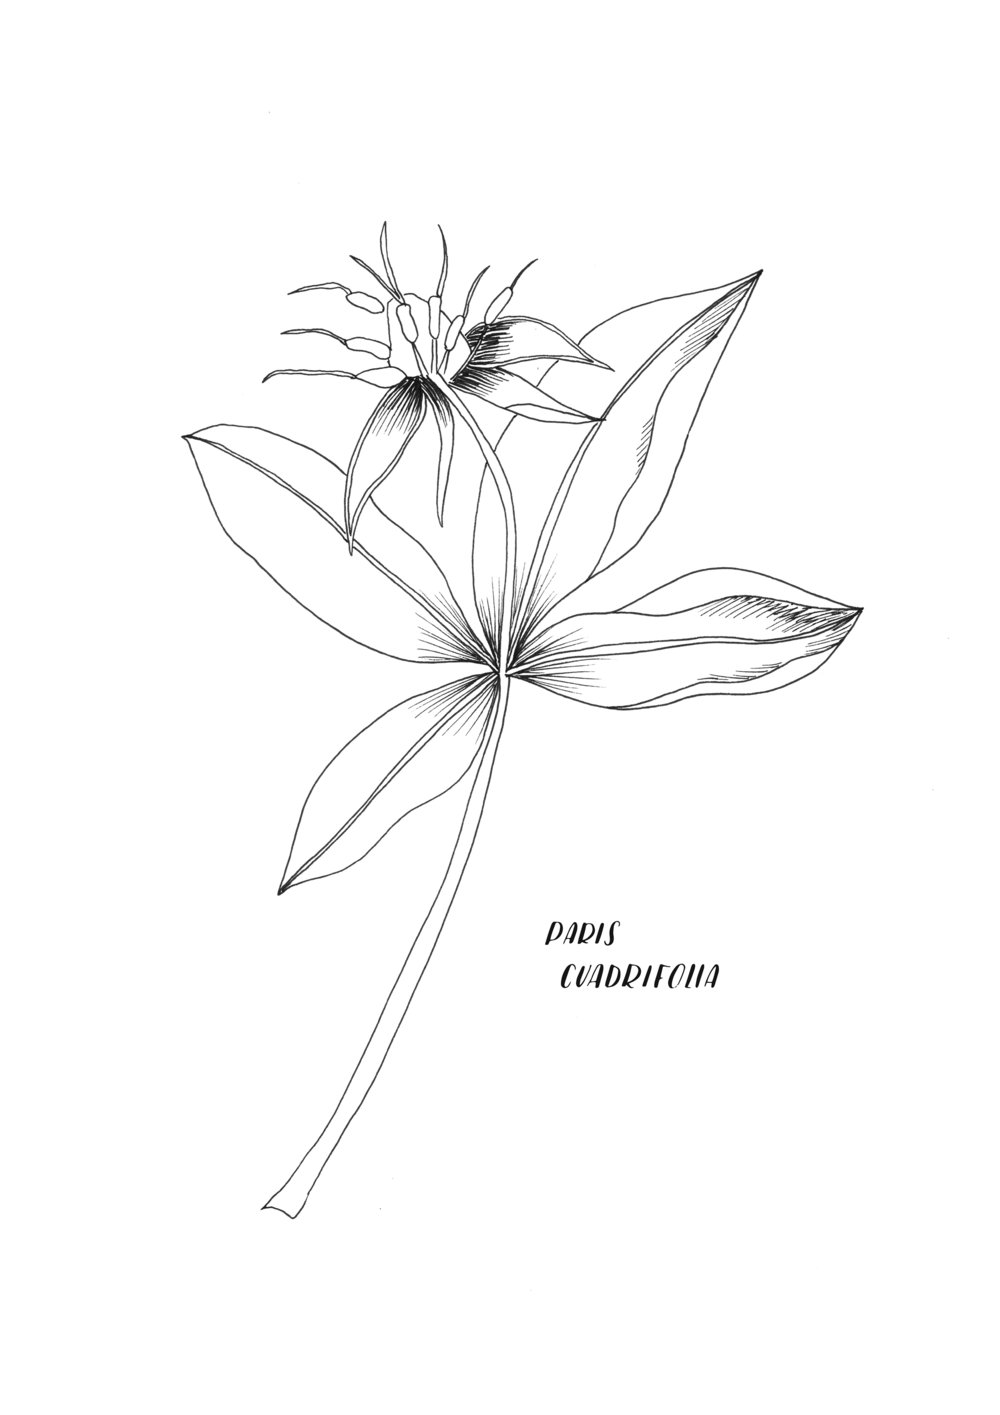 A4 ORIGINAL Paris Quadrifolia.jpg